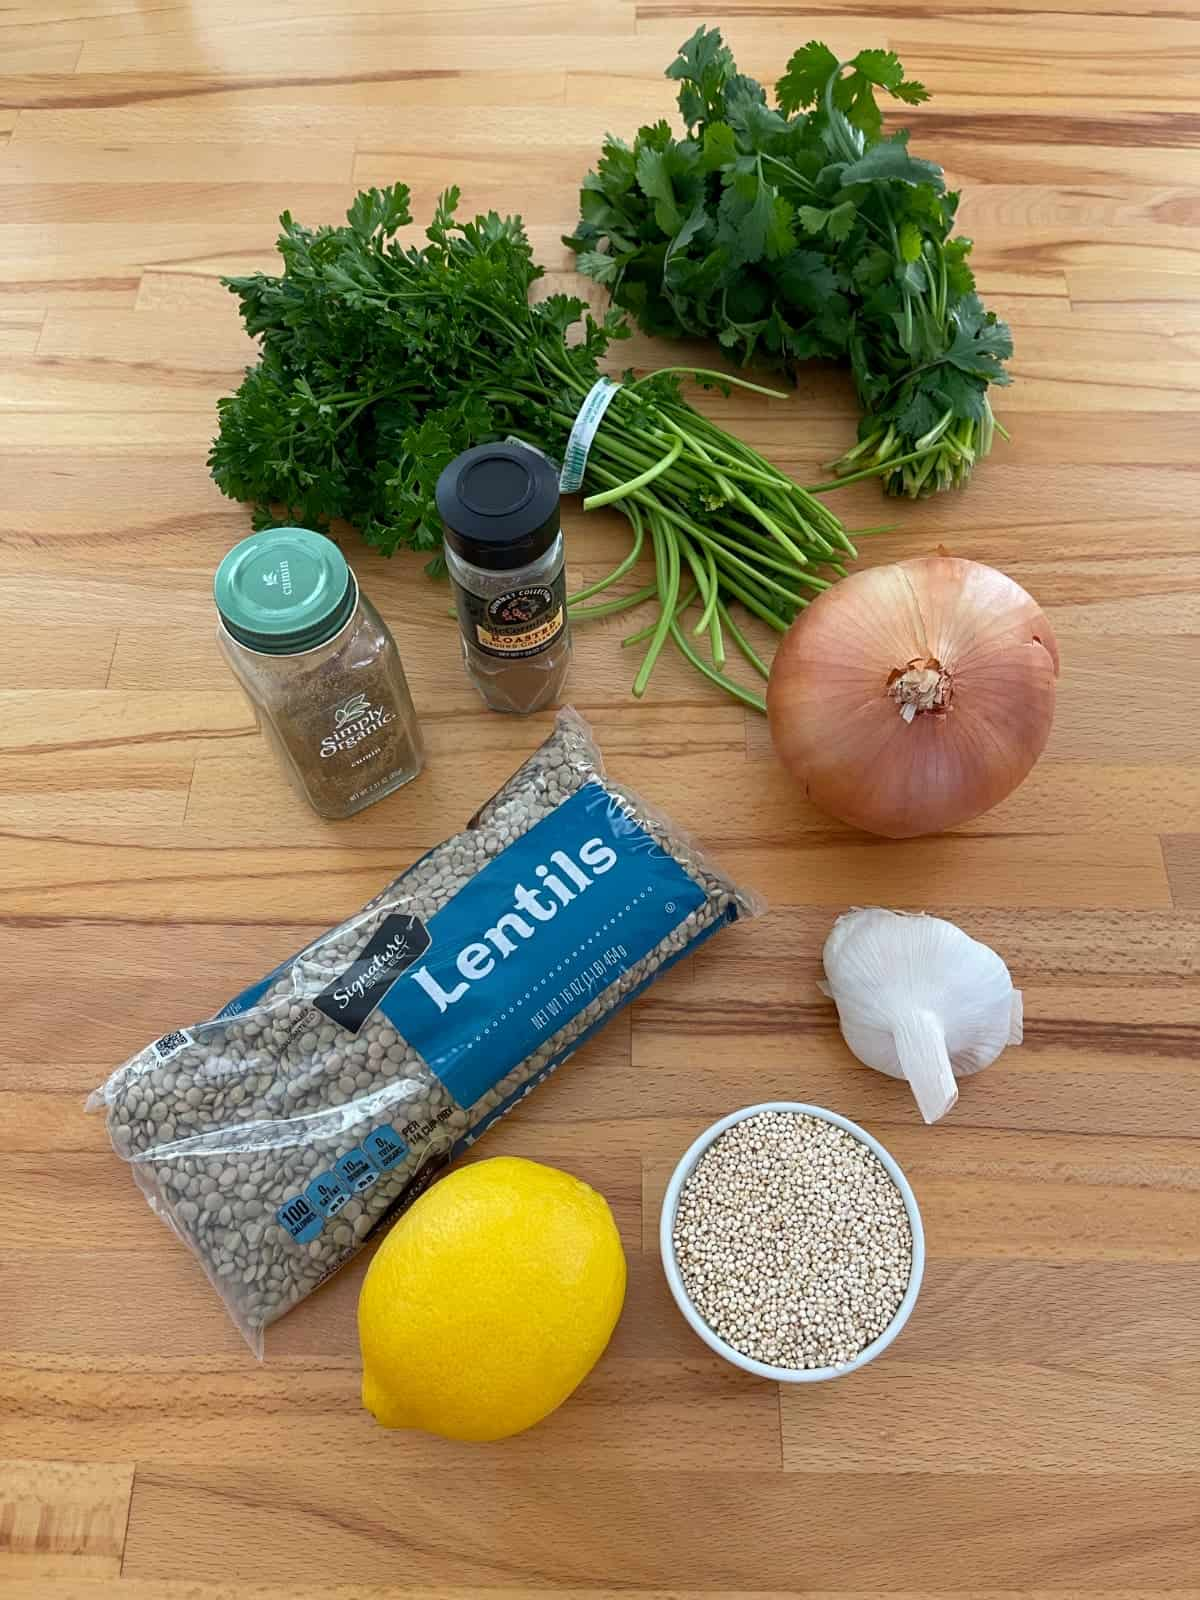 Bag of lentils, quinoa, lemon, garlic, onion, bunches of parsley and cilantro and jars of coriander and cumin of wood table.